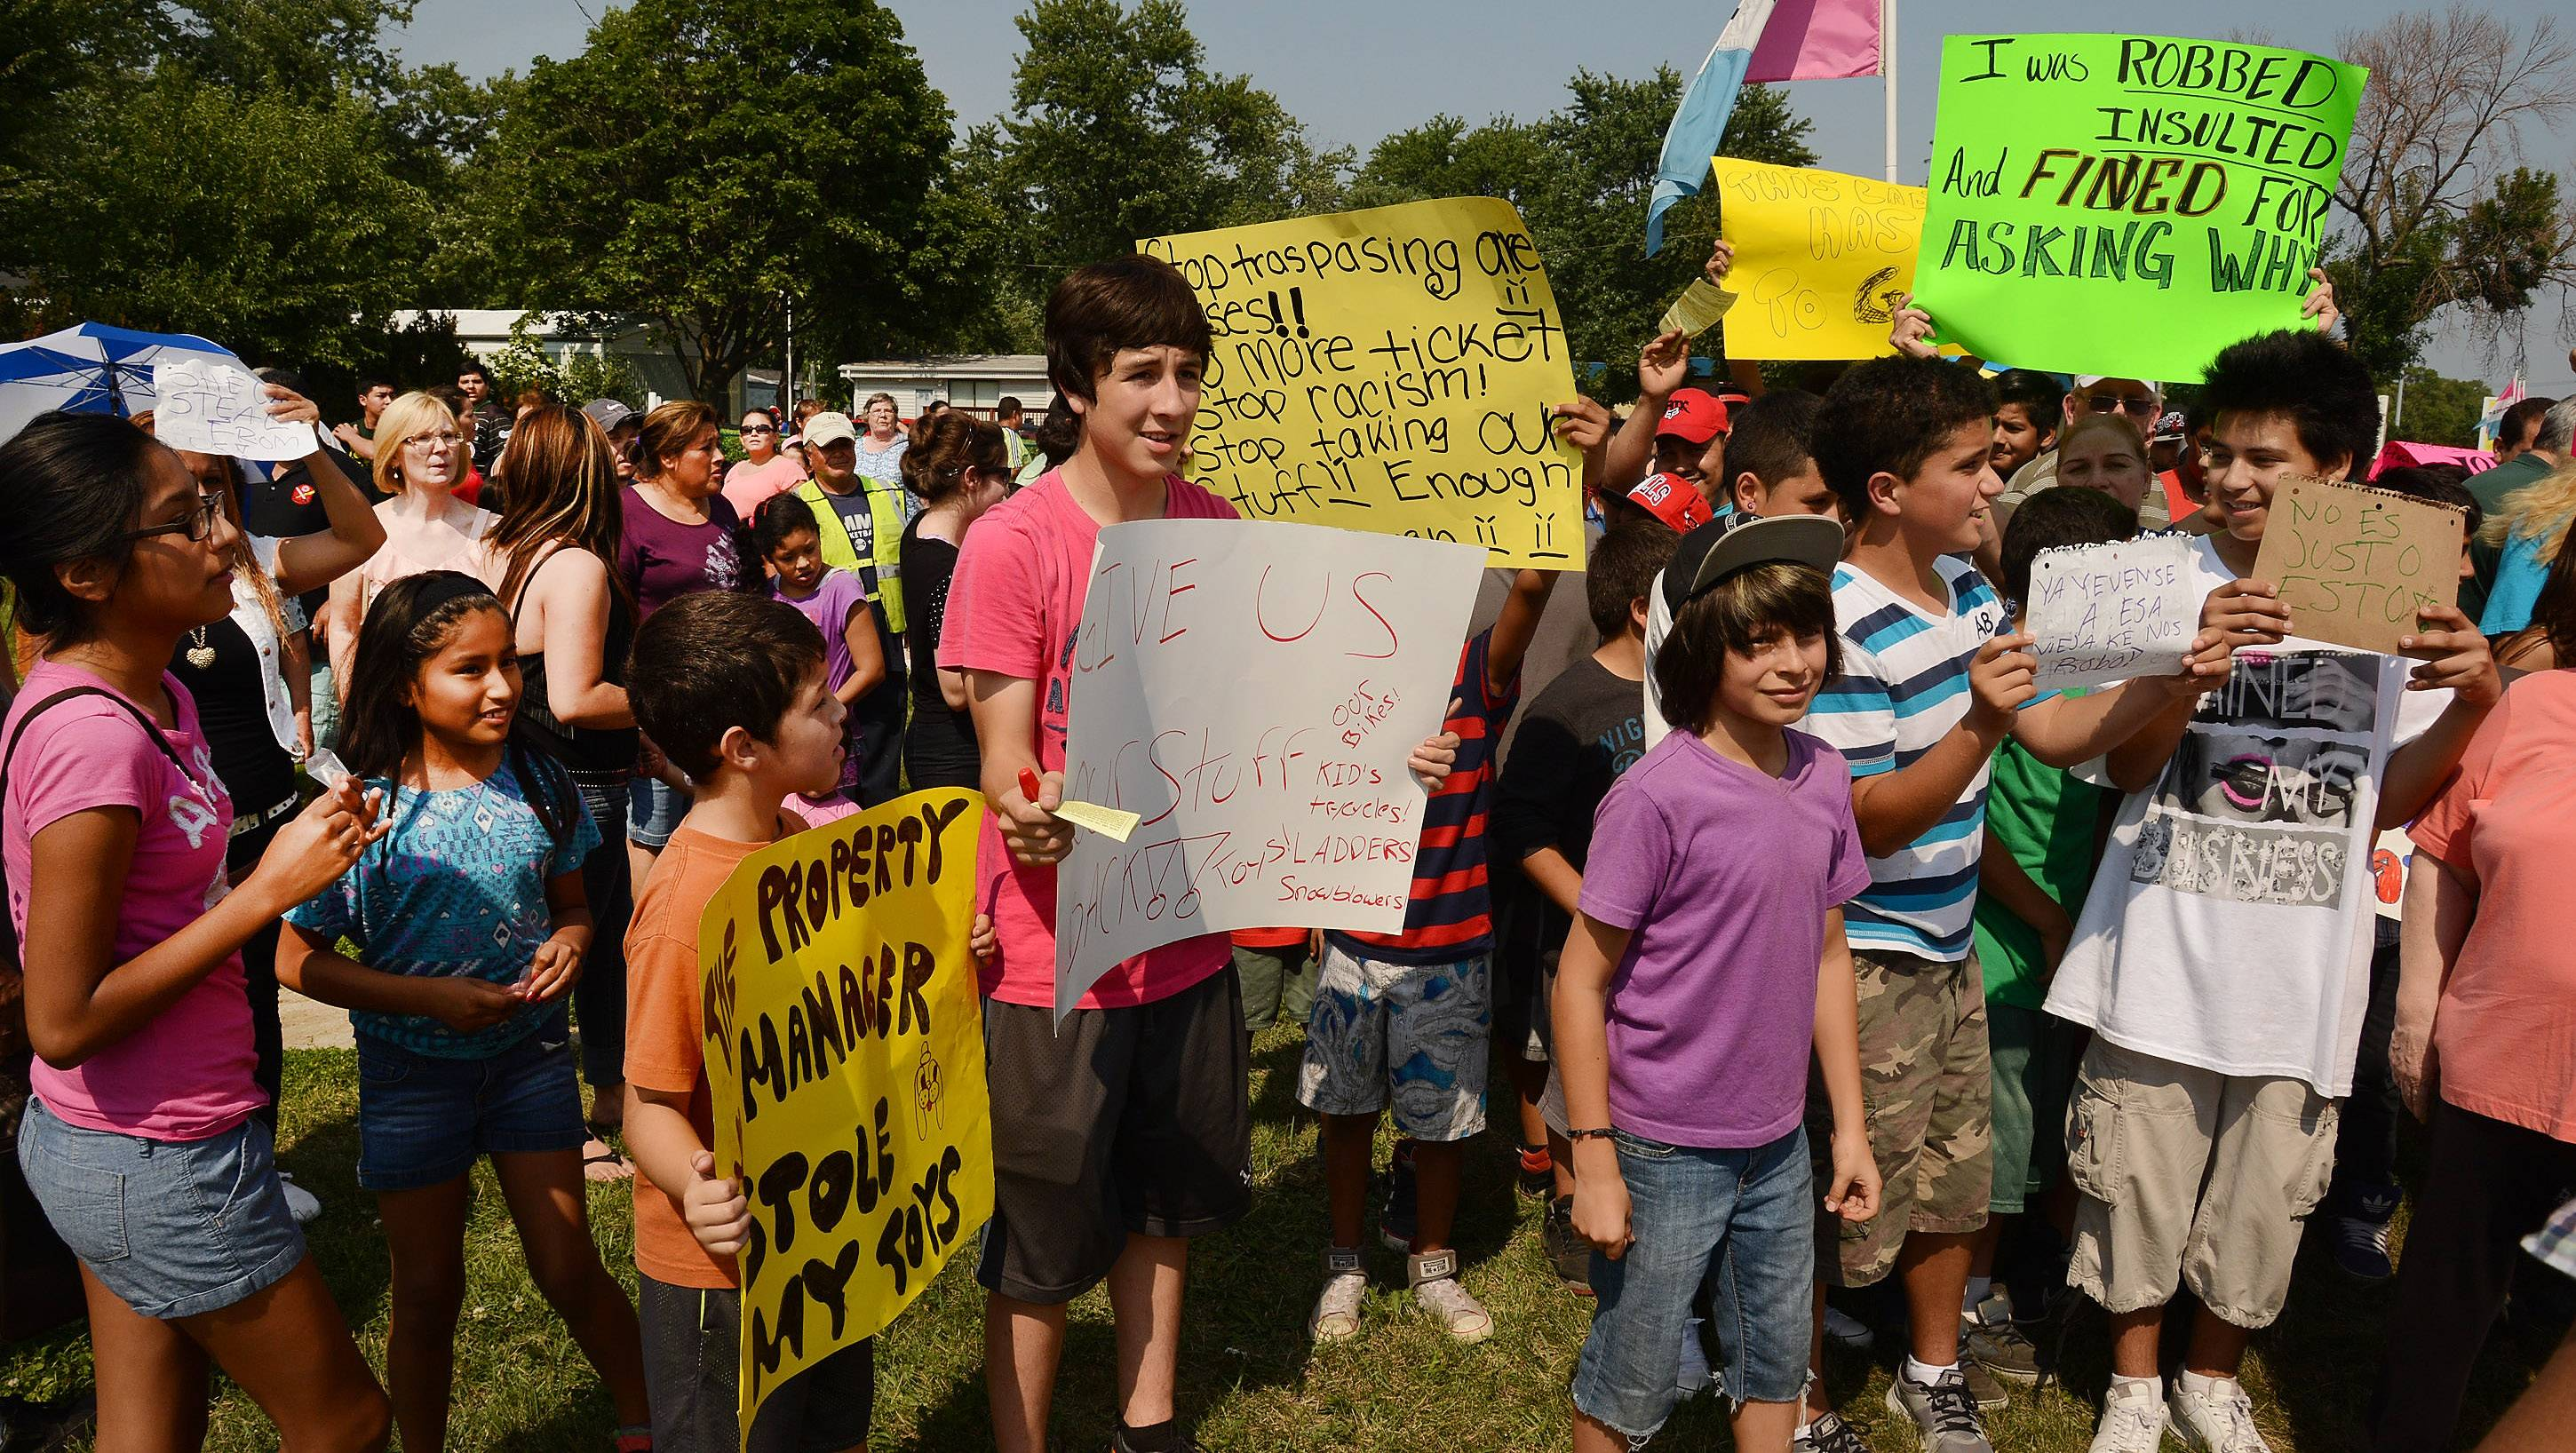 Residents of the Blackhawk Estates mobile home park near Des Plaines on Monday protested what they said was mistreatment by management.